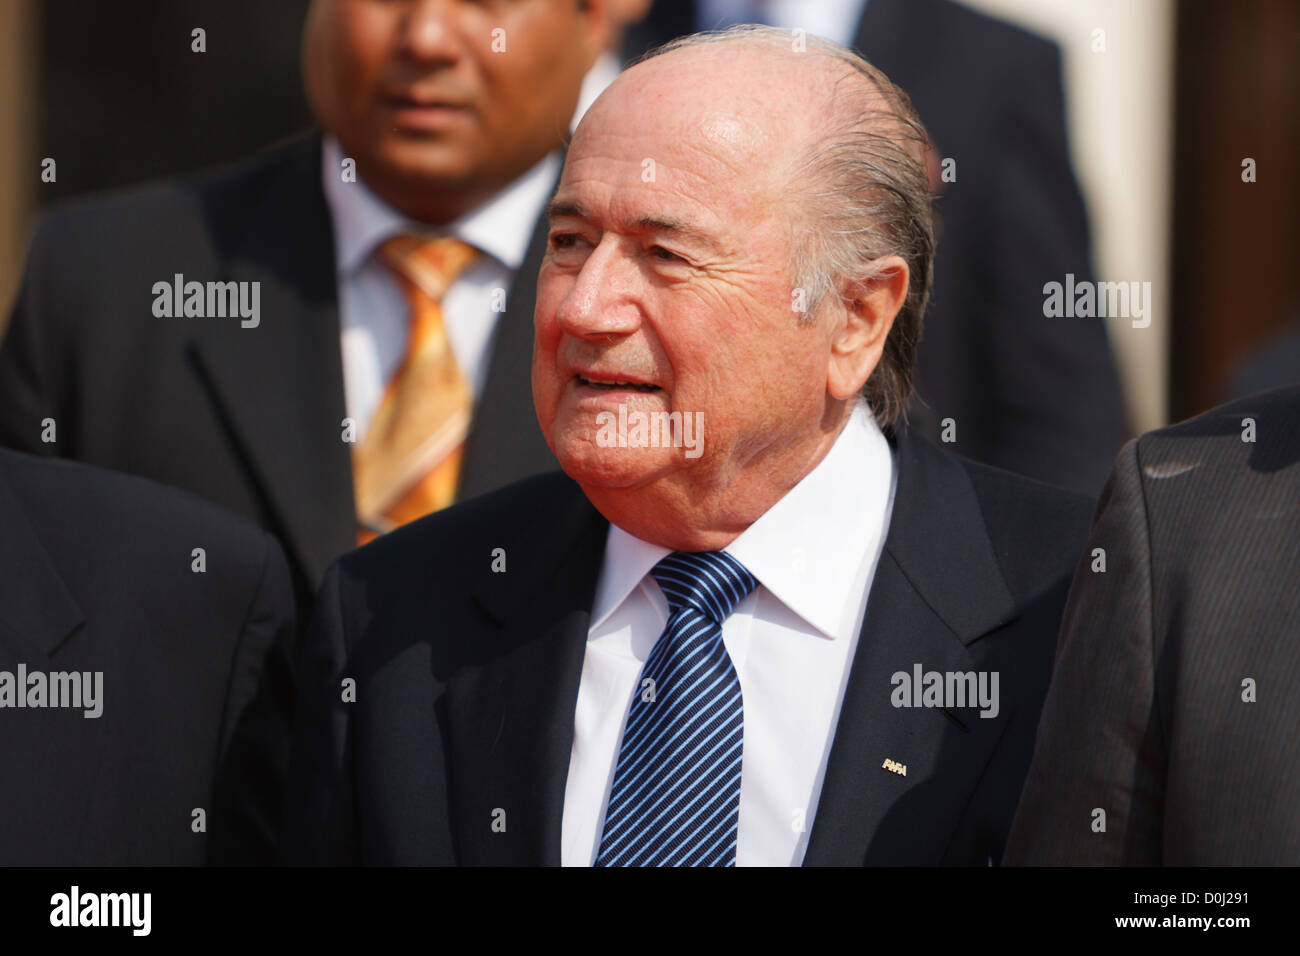 FIFA president Sepp Blatter attends a ceremony at the Egyptian FA ahead of the 2009 FIFA U-20 World Cup final. - Stock Image